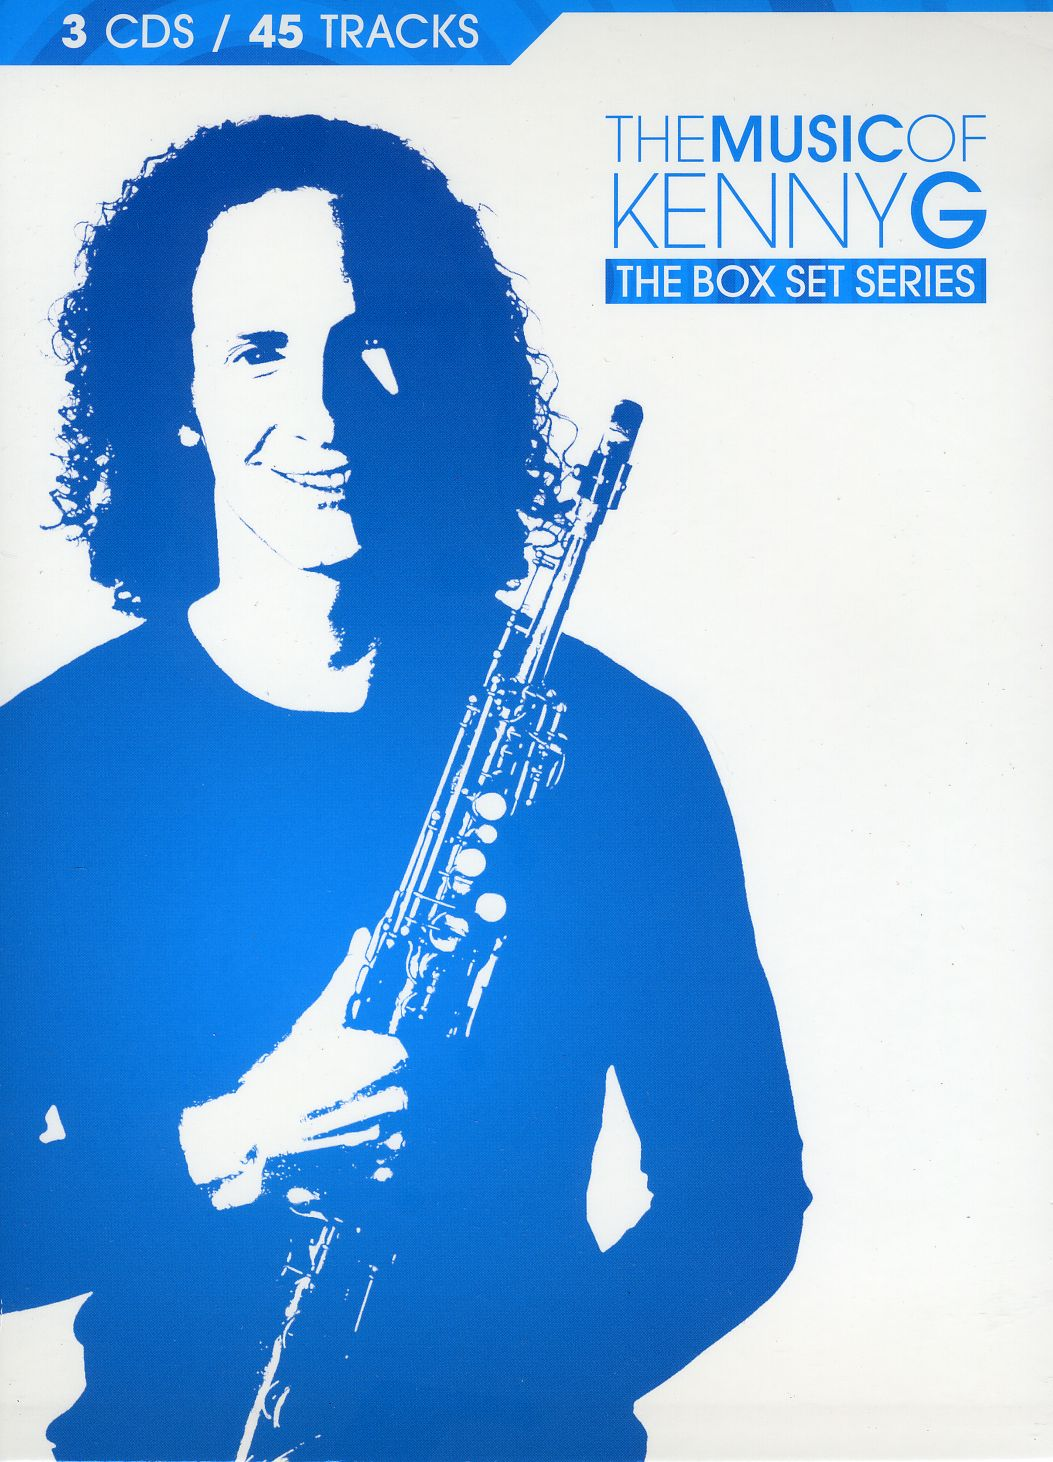 Kenny G - The Music of Kenny G